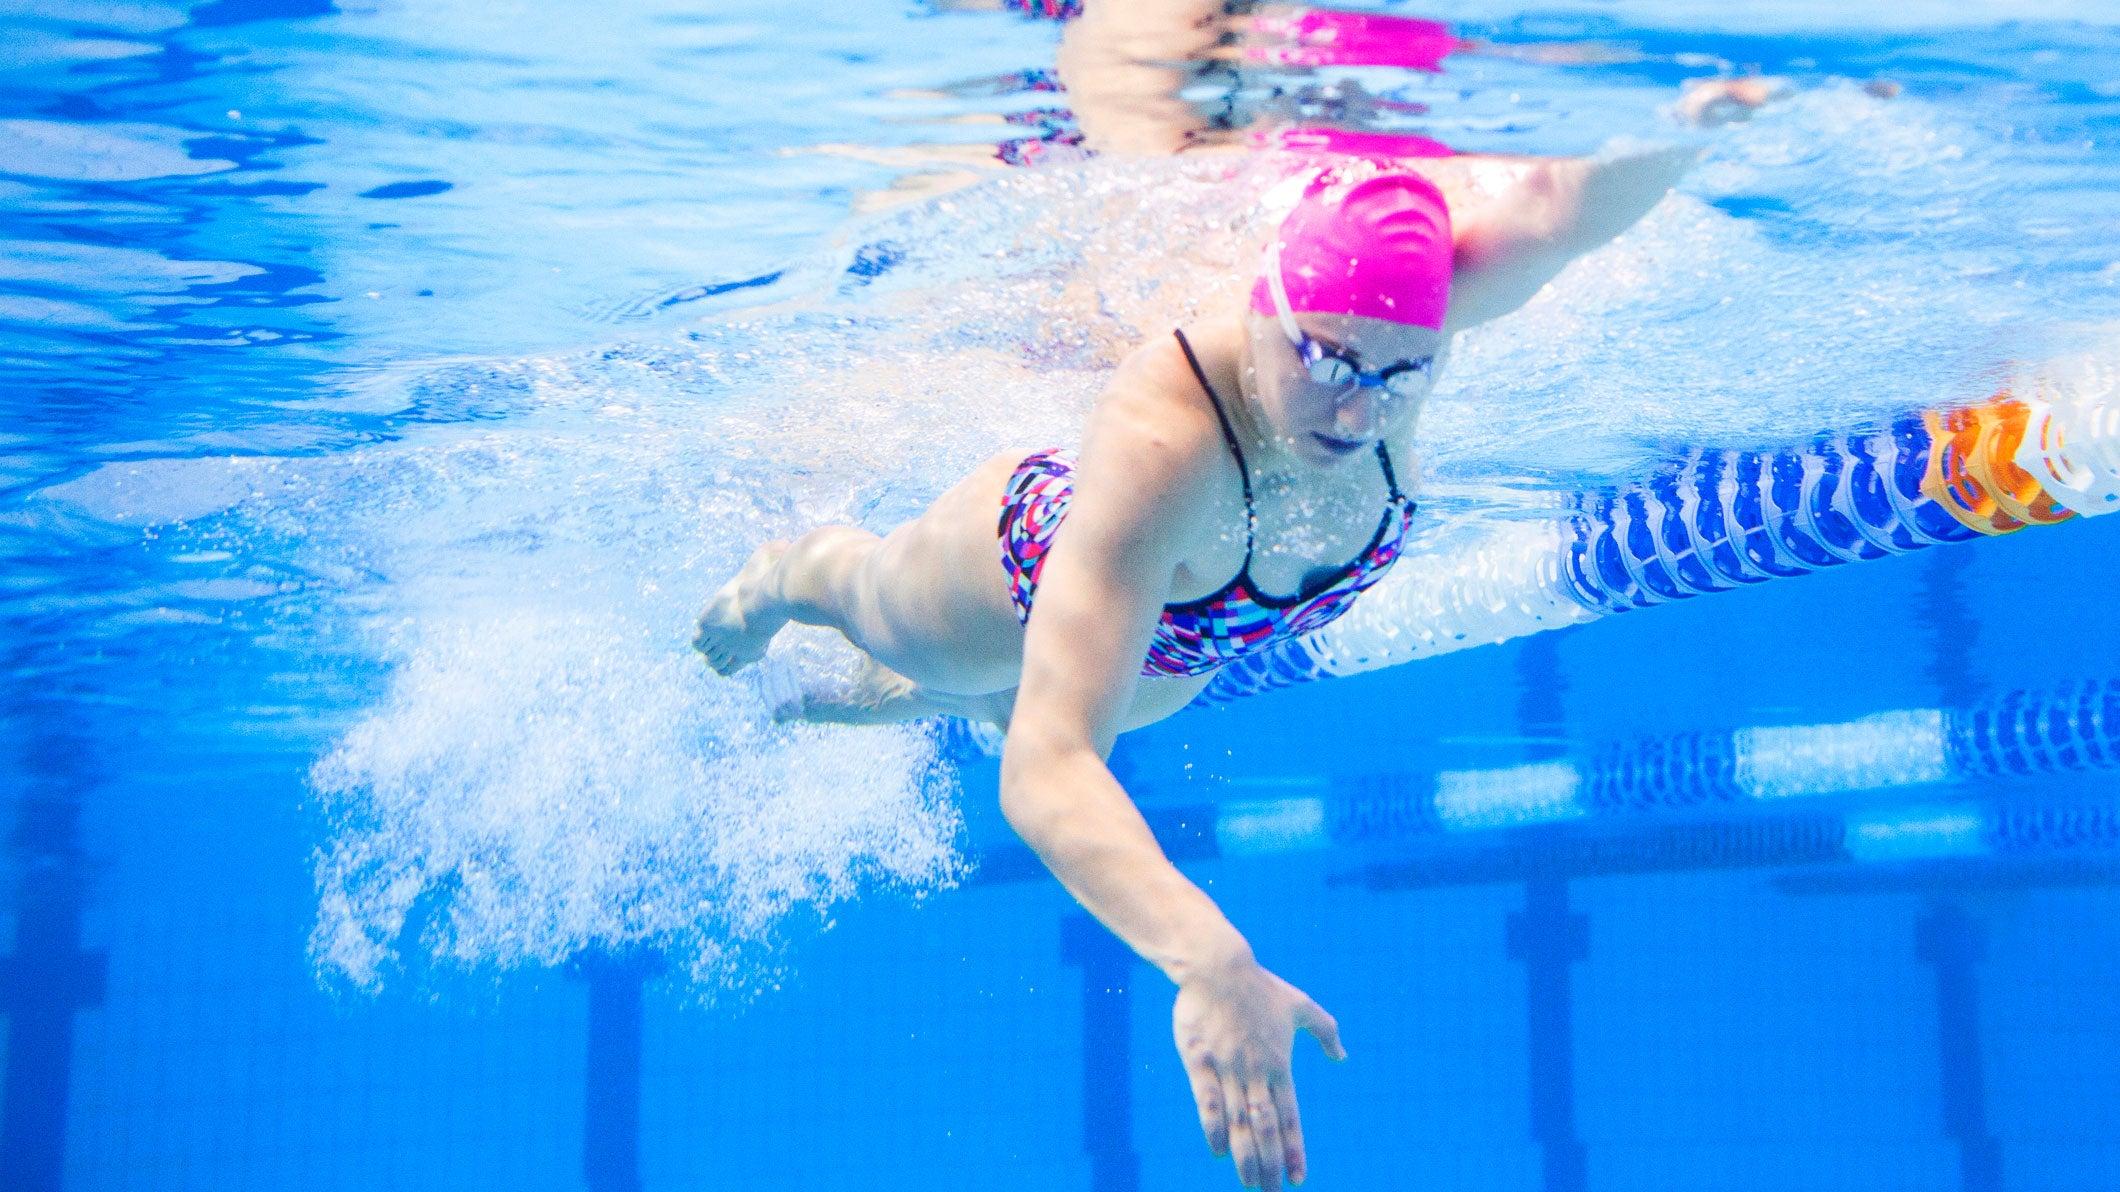 Weekend Swim Workout: No Walls Drill – Triathlete